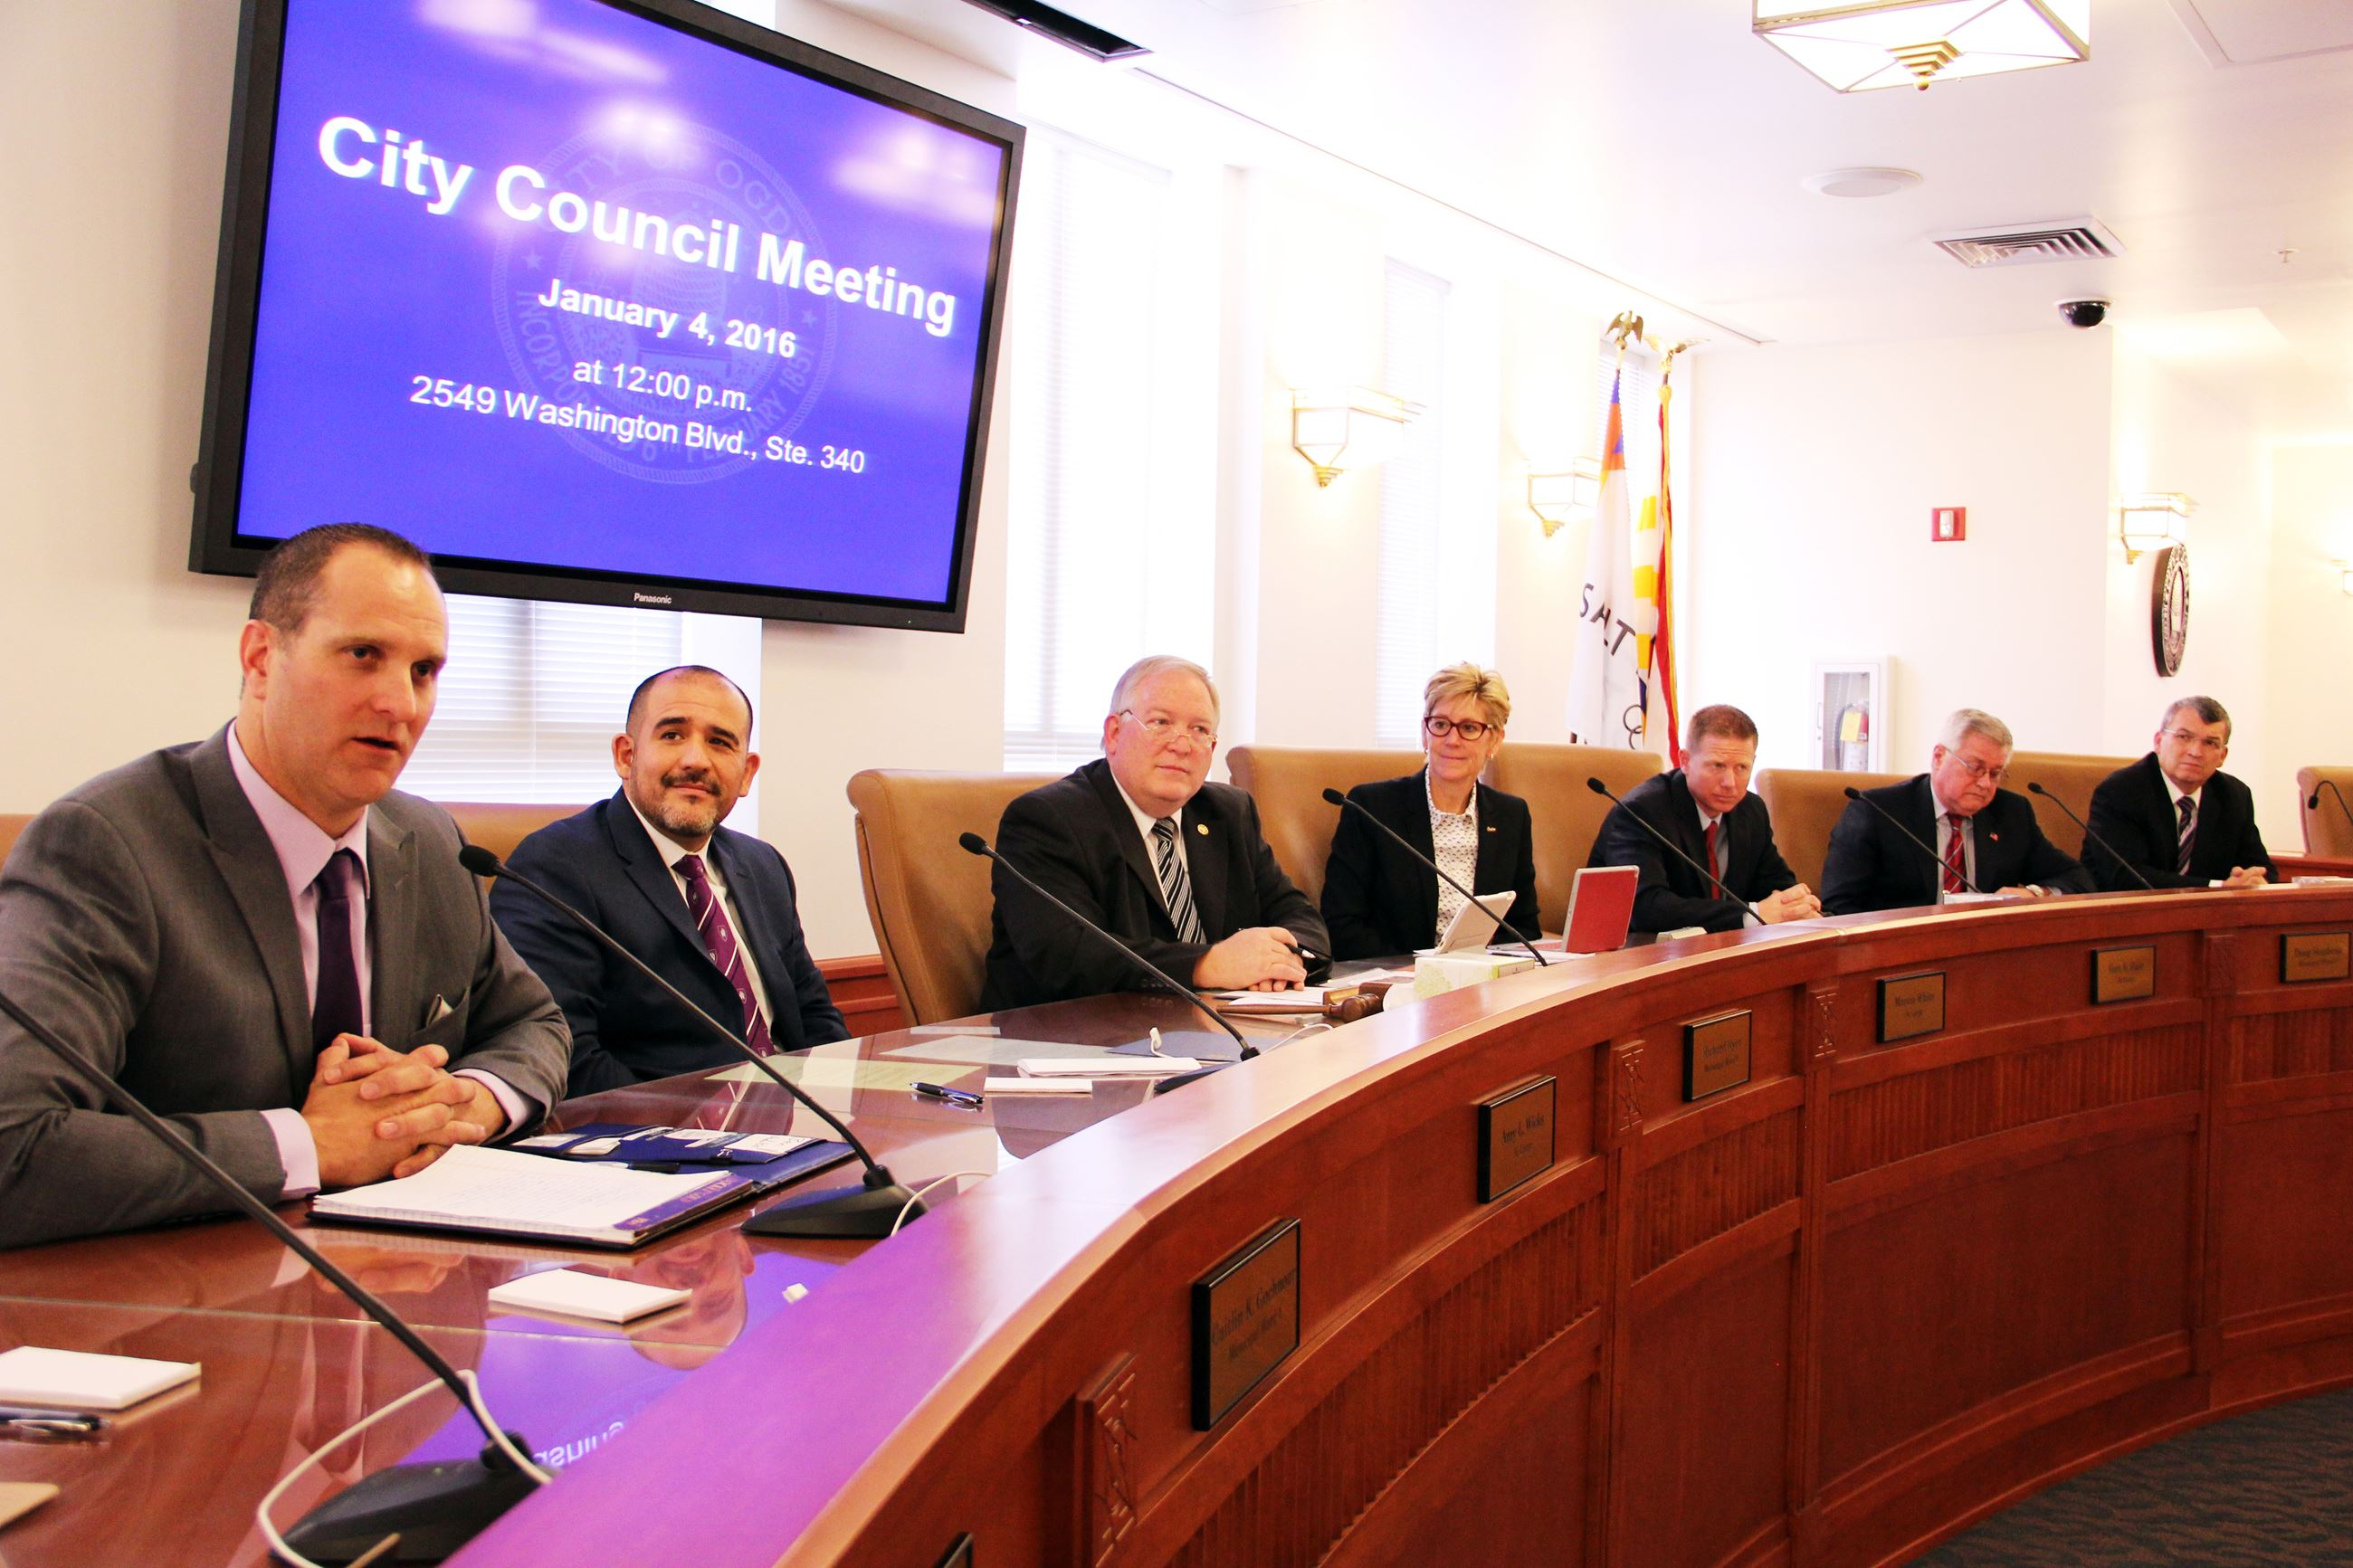 City Council Meeting 2016